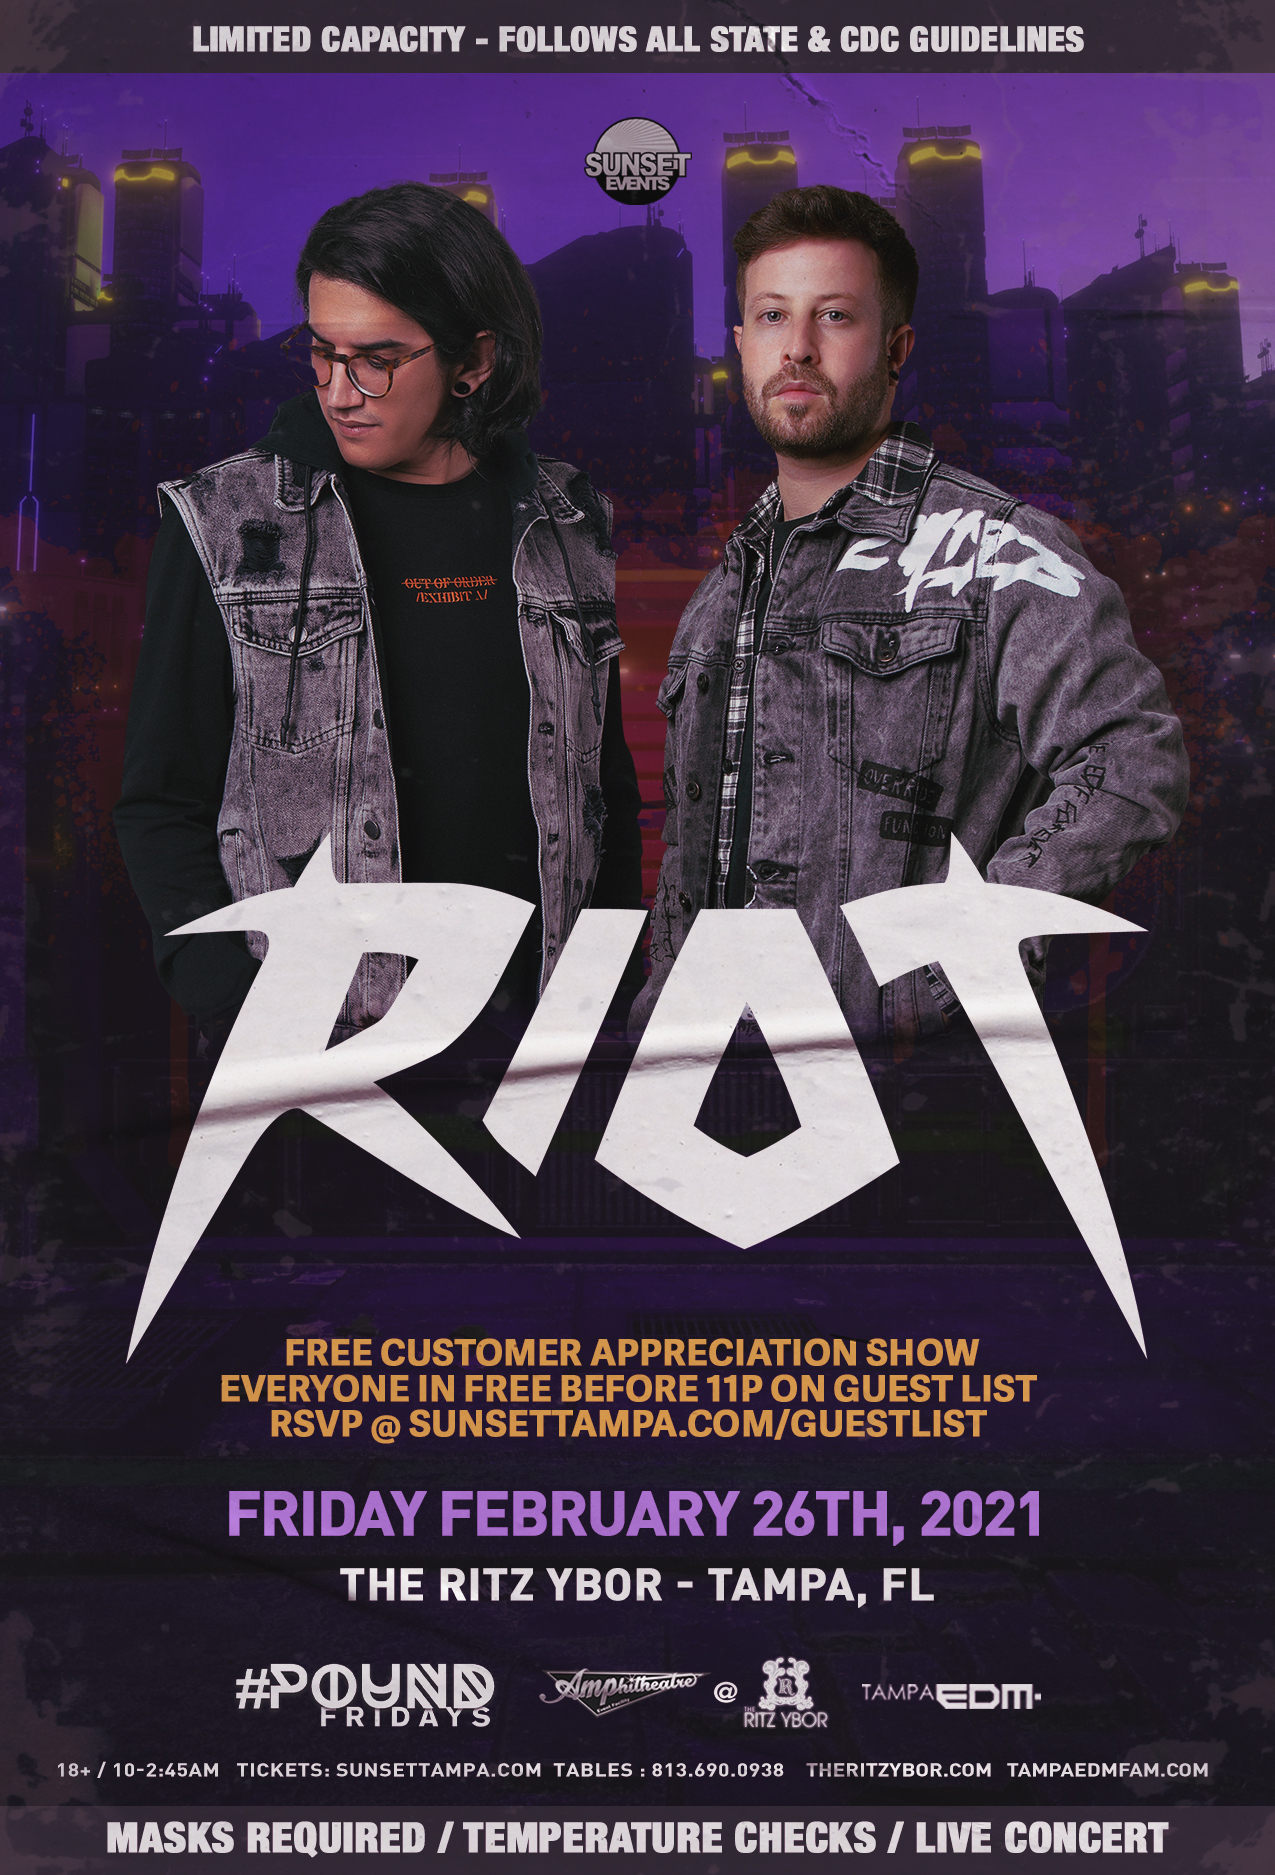 RIOT for #POUND Fridays at The RITZ Ybor – 2/26/2021